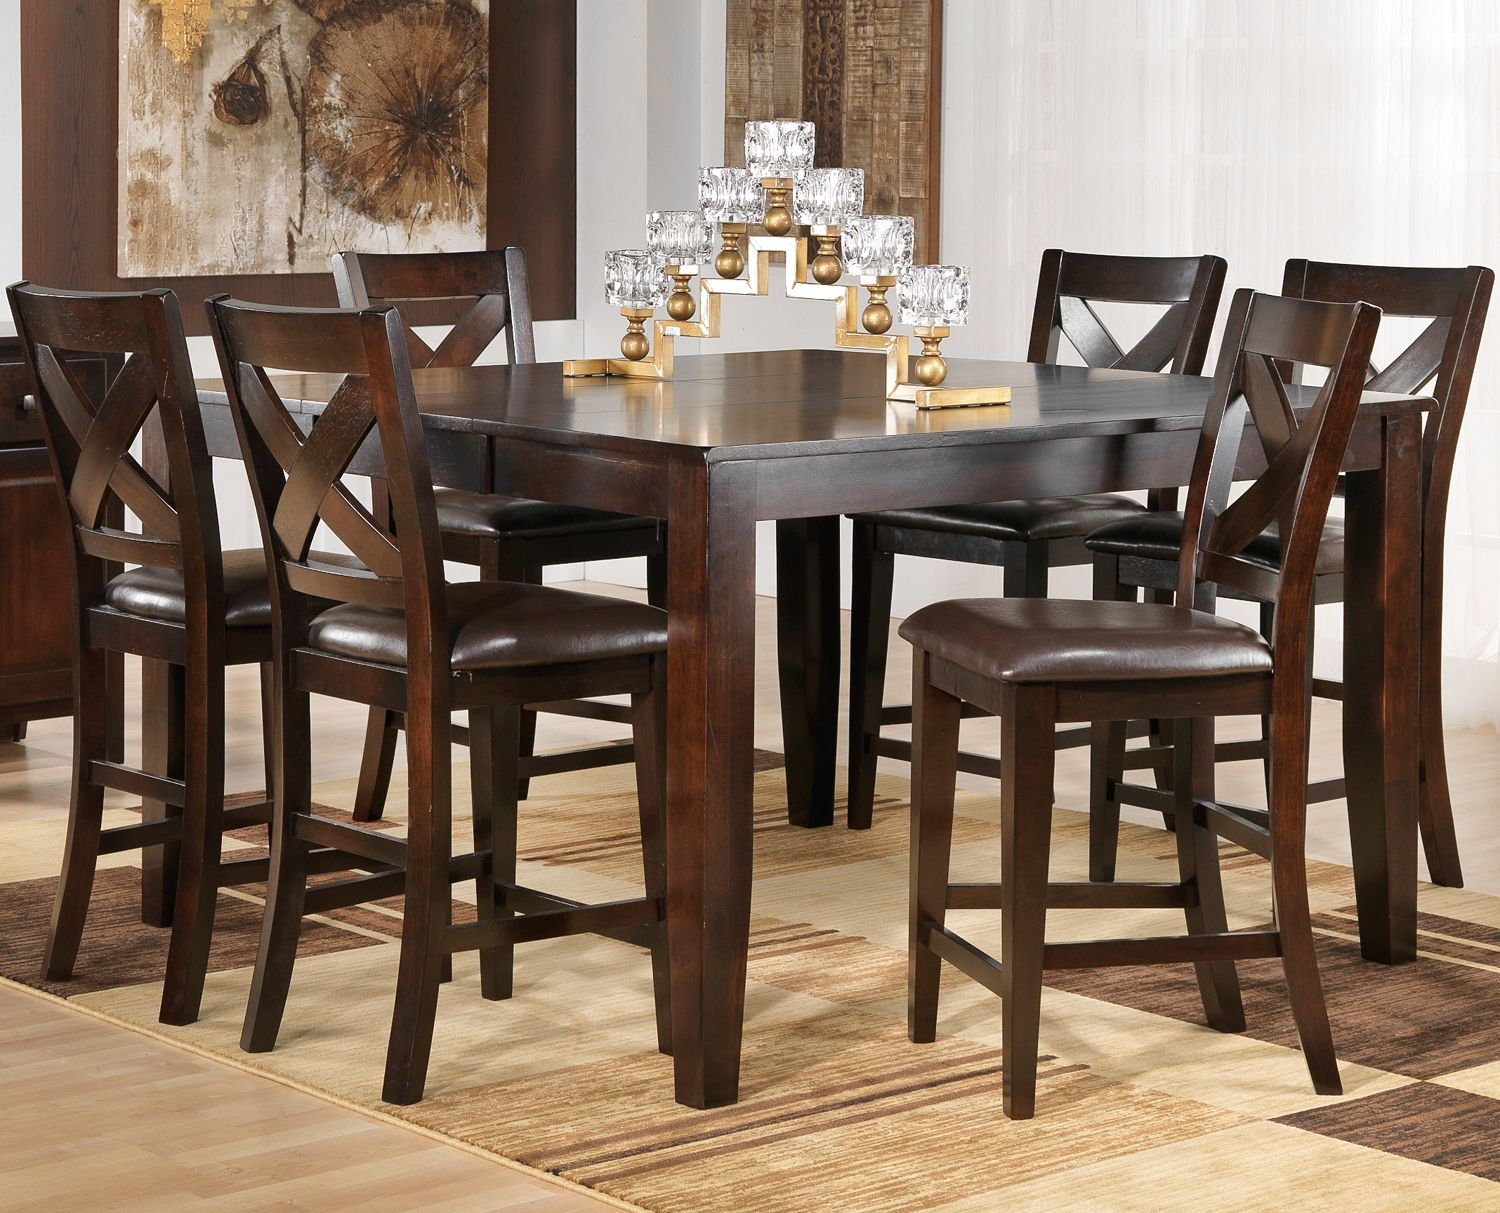 Soho II Dining Room 7 Pc. Pub Dining Set - Leon\'s - Just ordered ...